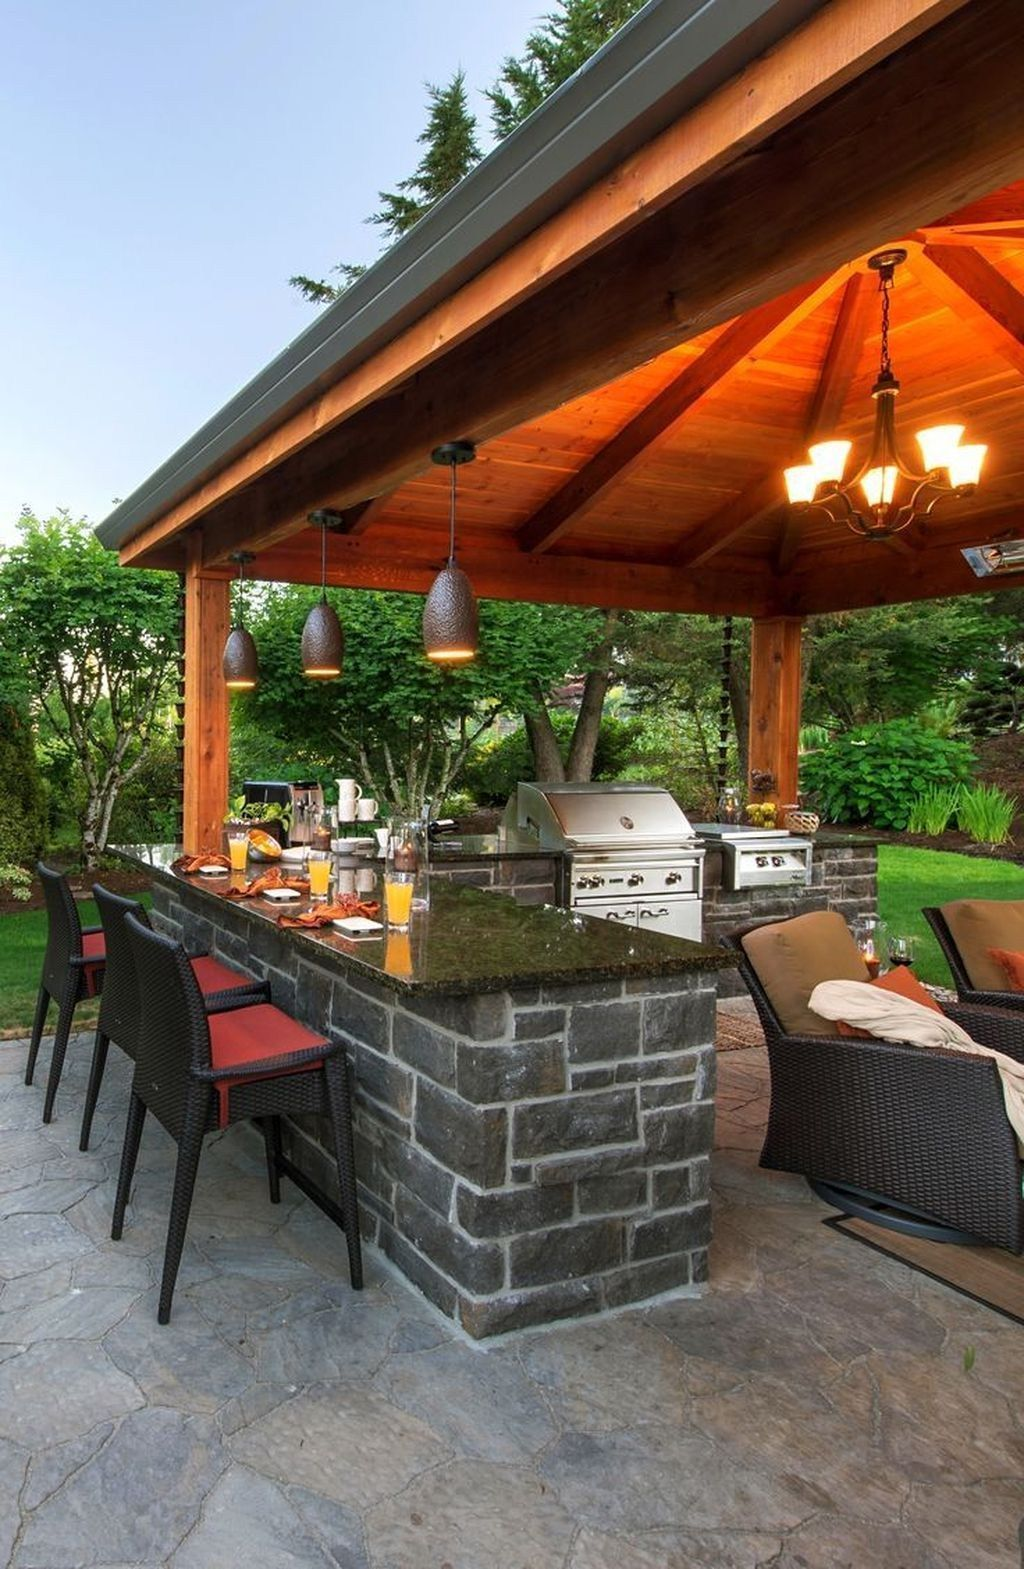 45 Awesome Outdoor Kitchen Ideas And Design Pandriva Outdoor Kitchen Design Backyard Patio Patio